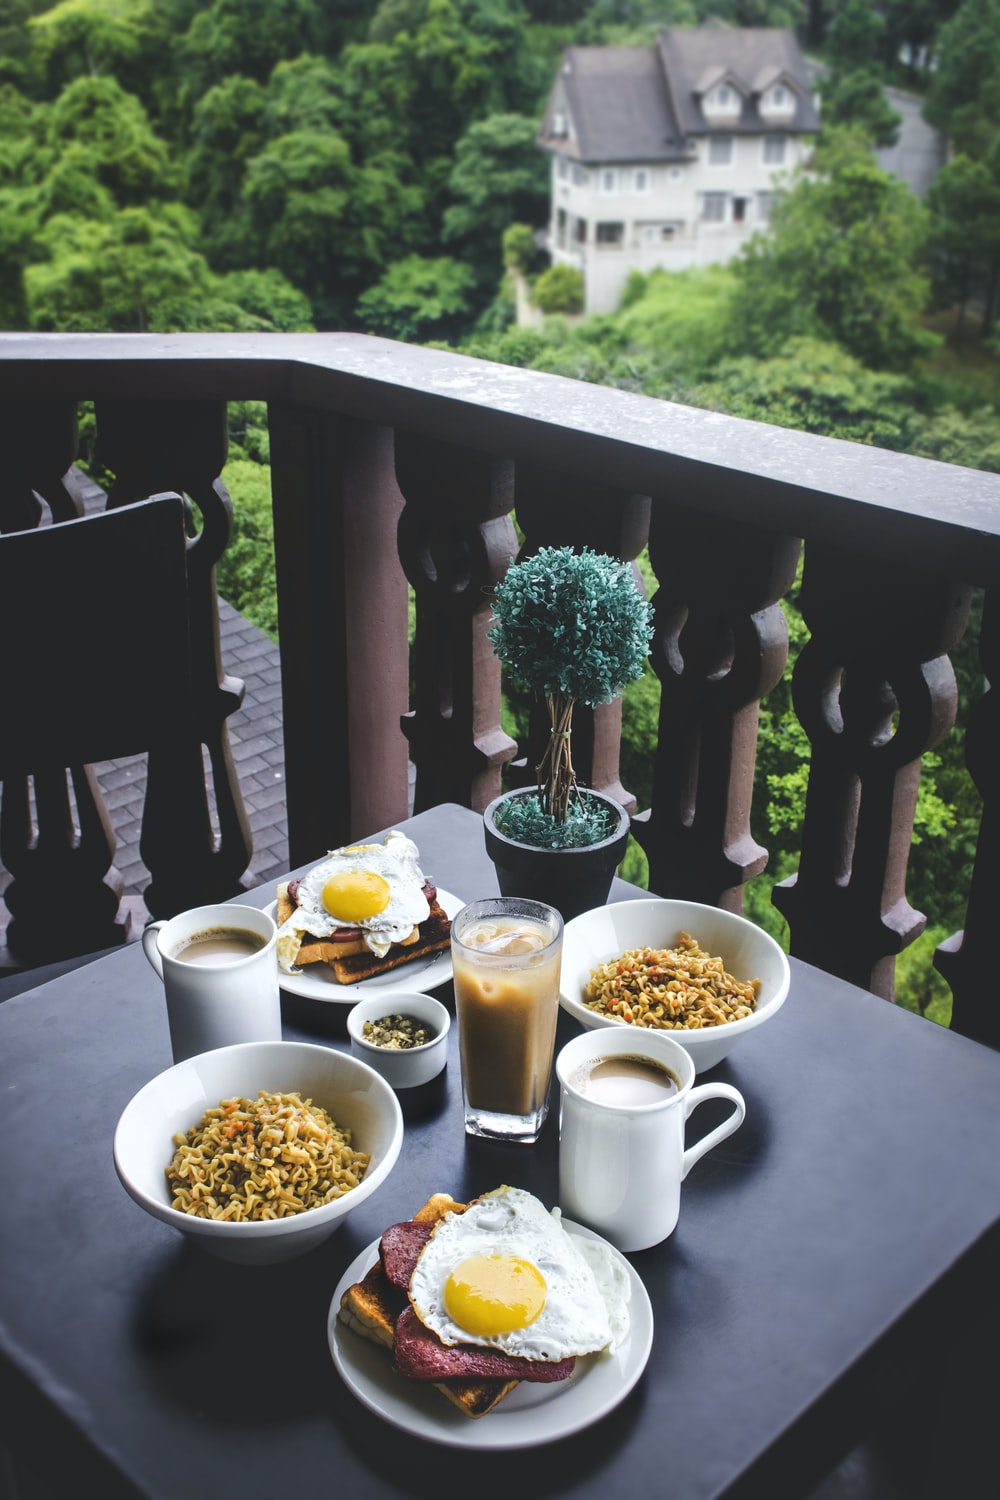 breakfast placed on table at terrace SPAM meat